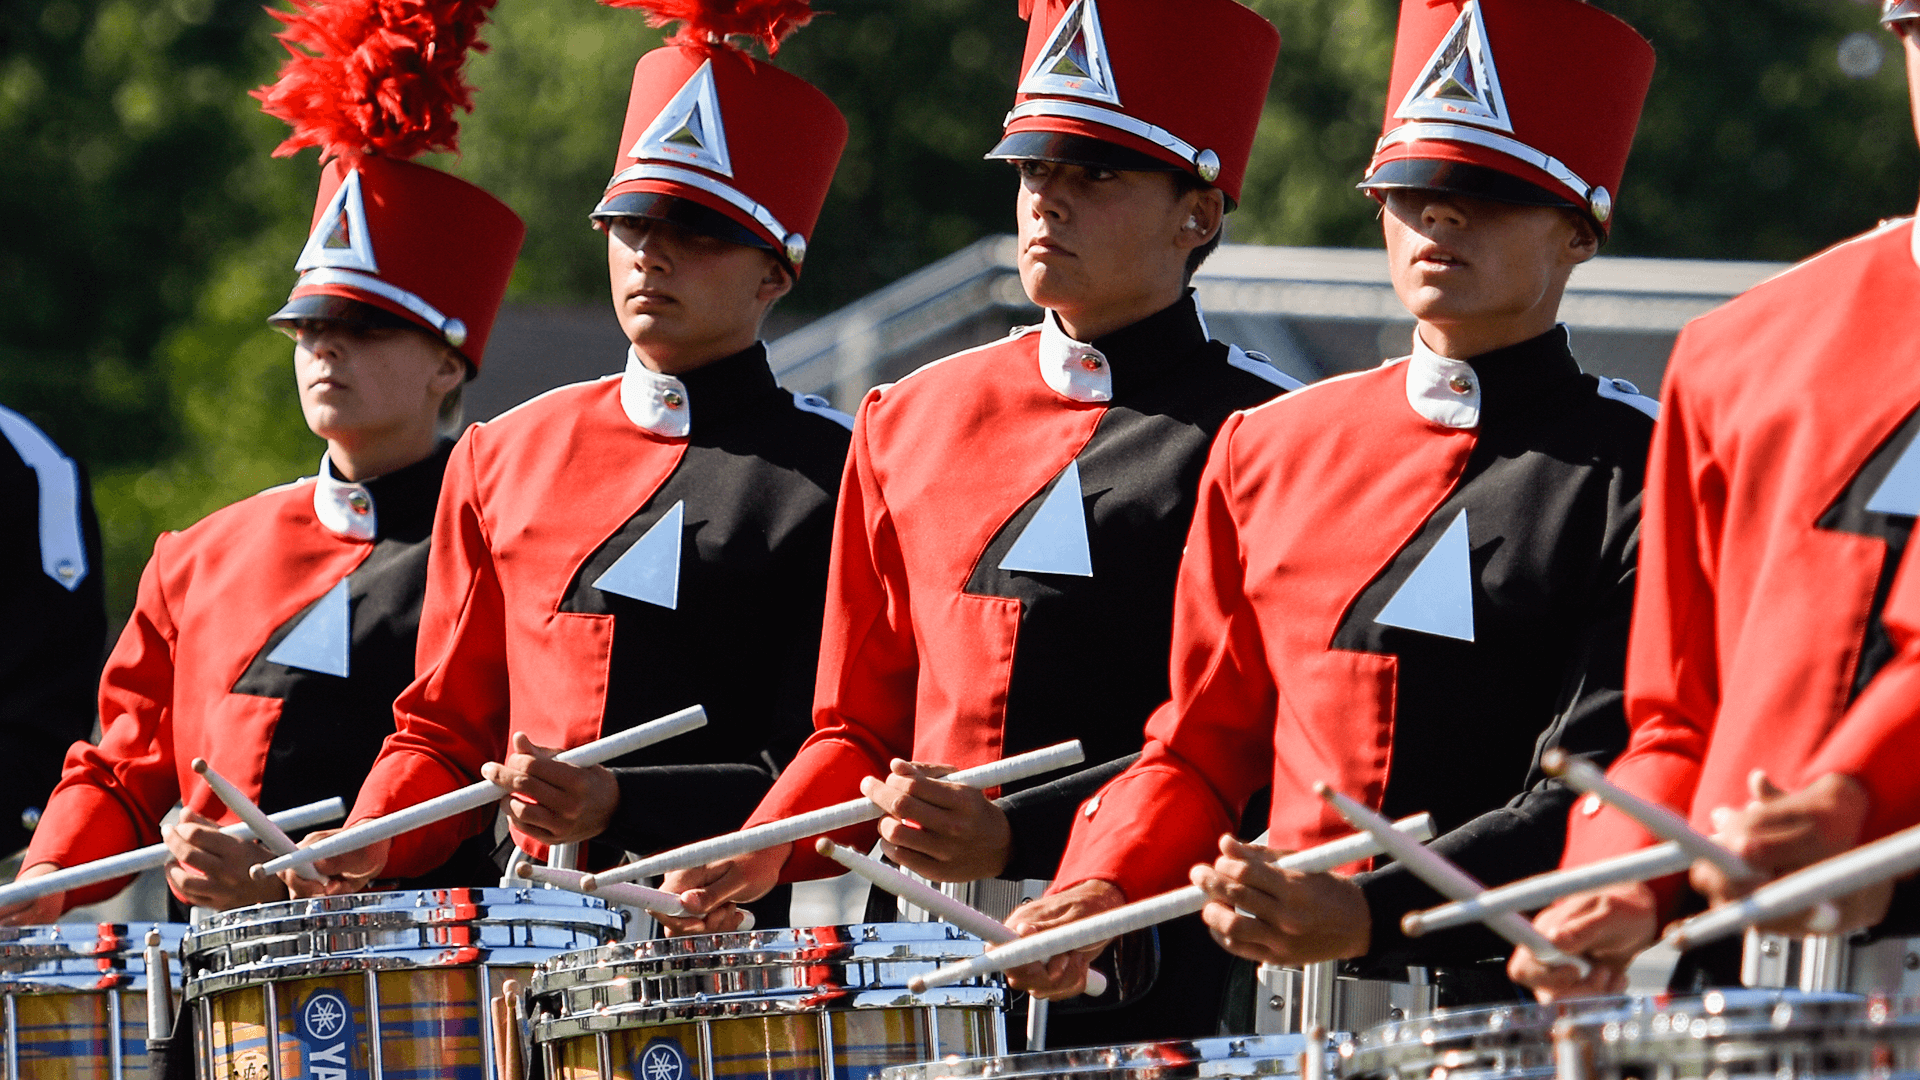 Tournament of Drums